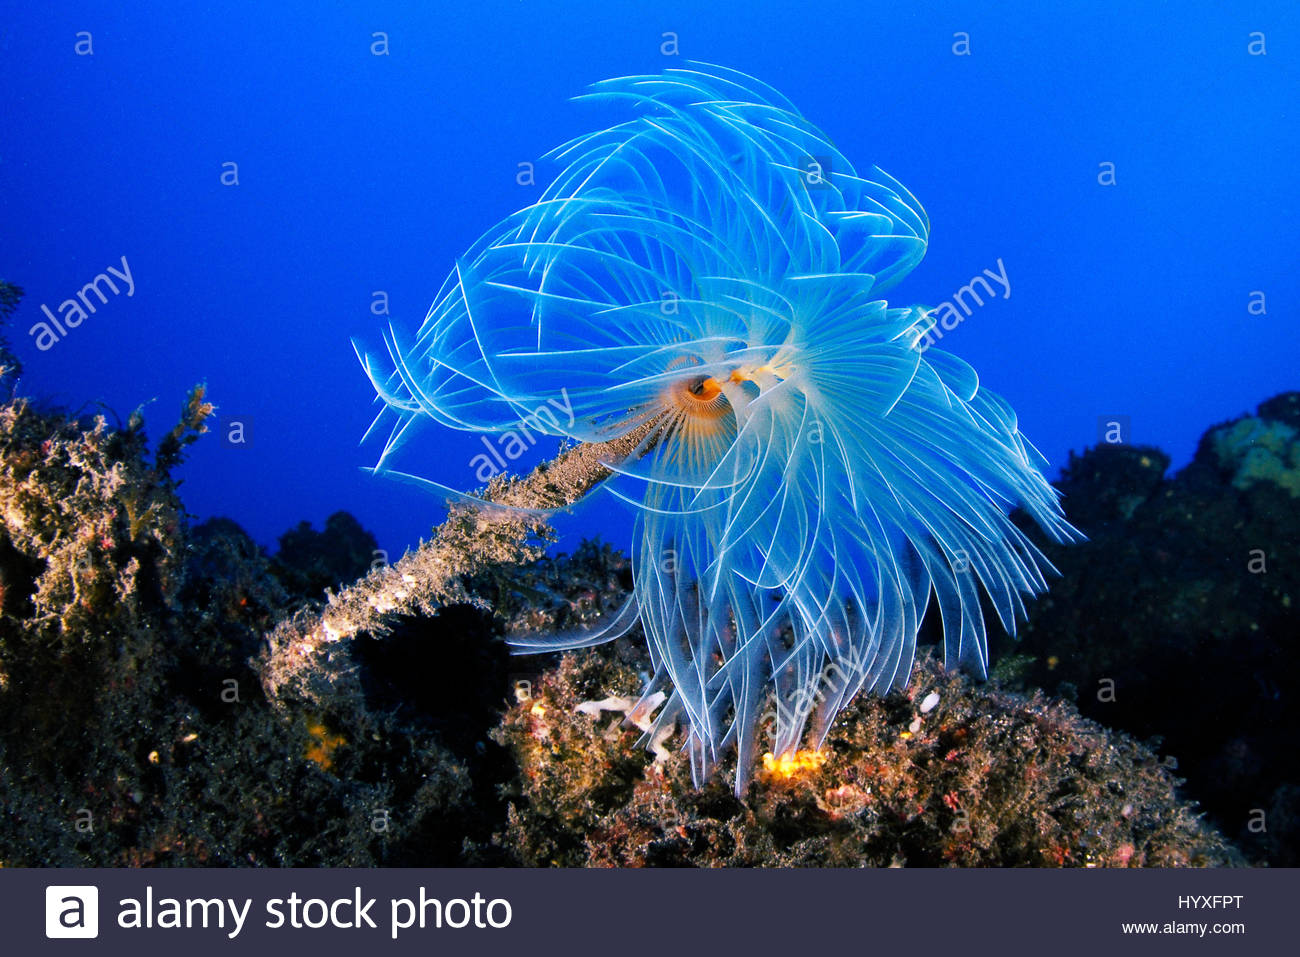 A feather duster worm stretches out its crown of feeding appendages. - Stock Image